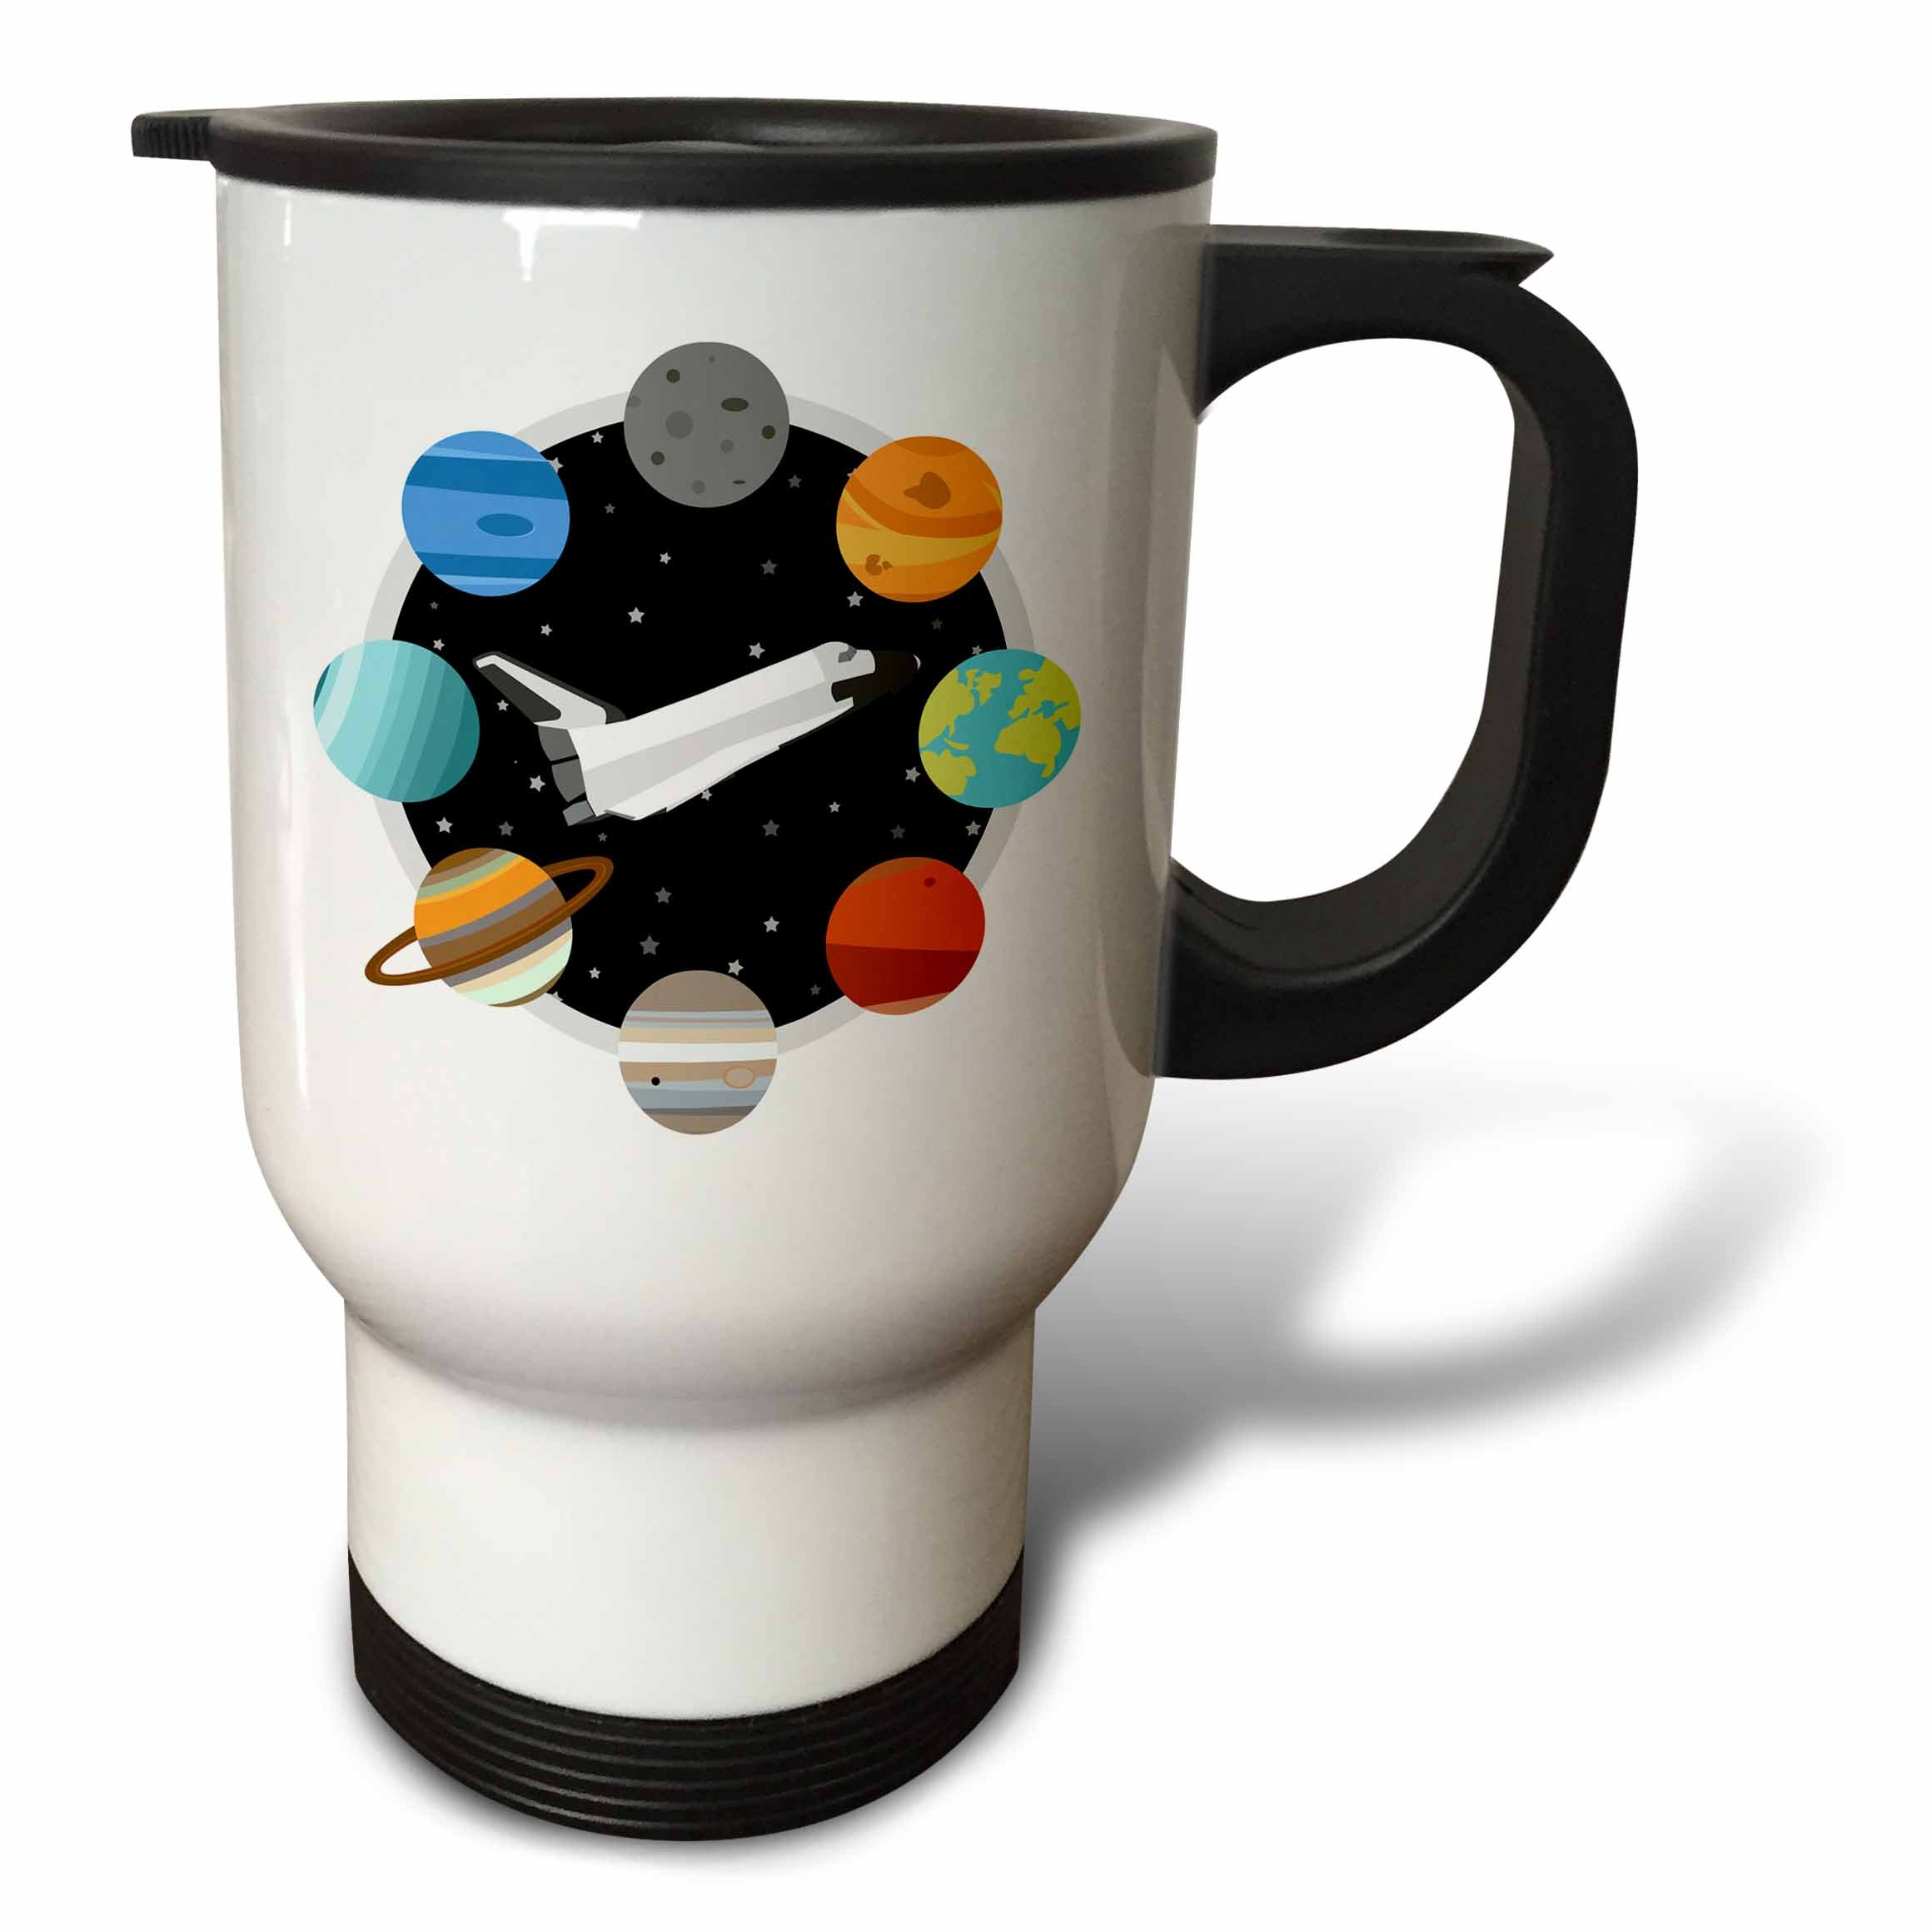 3dRose Janna Salak Designs Outer Space - Space Shuttle and Solar System - 14oz Stainless Steel Travel Mug (tm_283592_1)